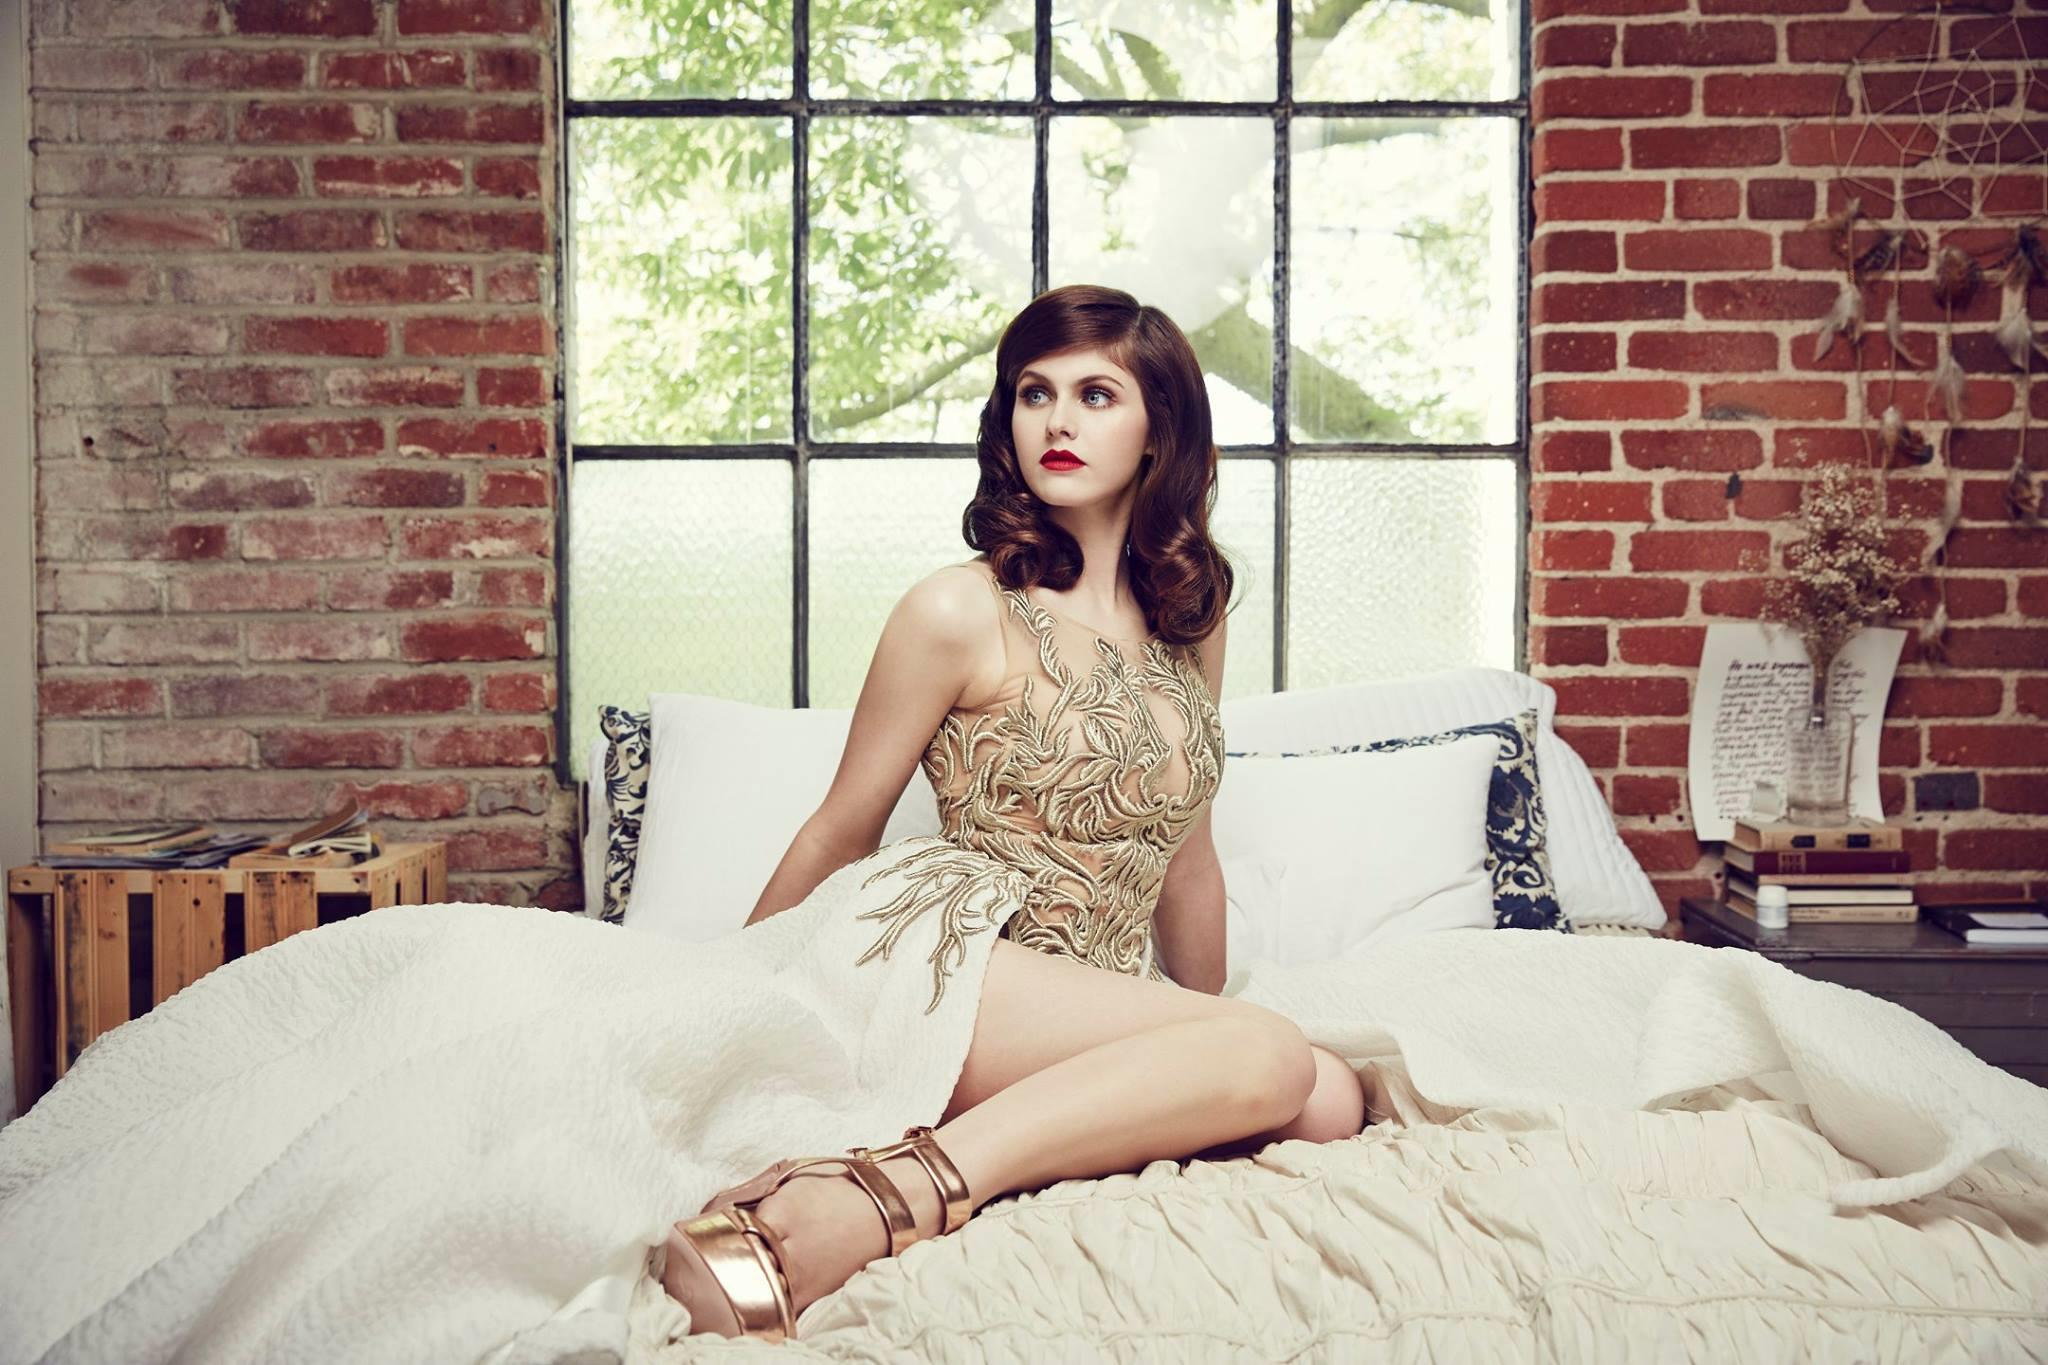 Wallpapers For Girls Spark Alexandra Daddario Poses For Standard Magazine 2015